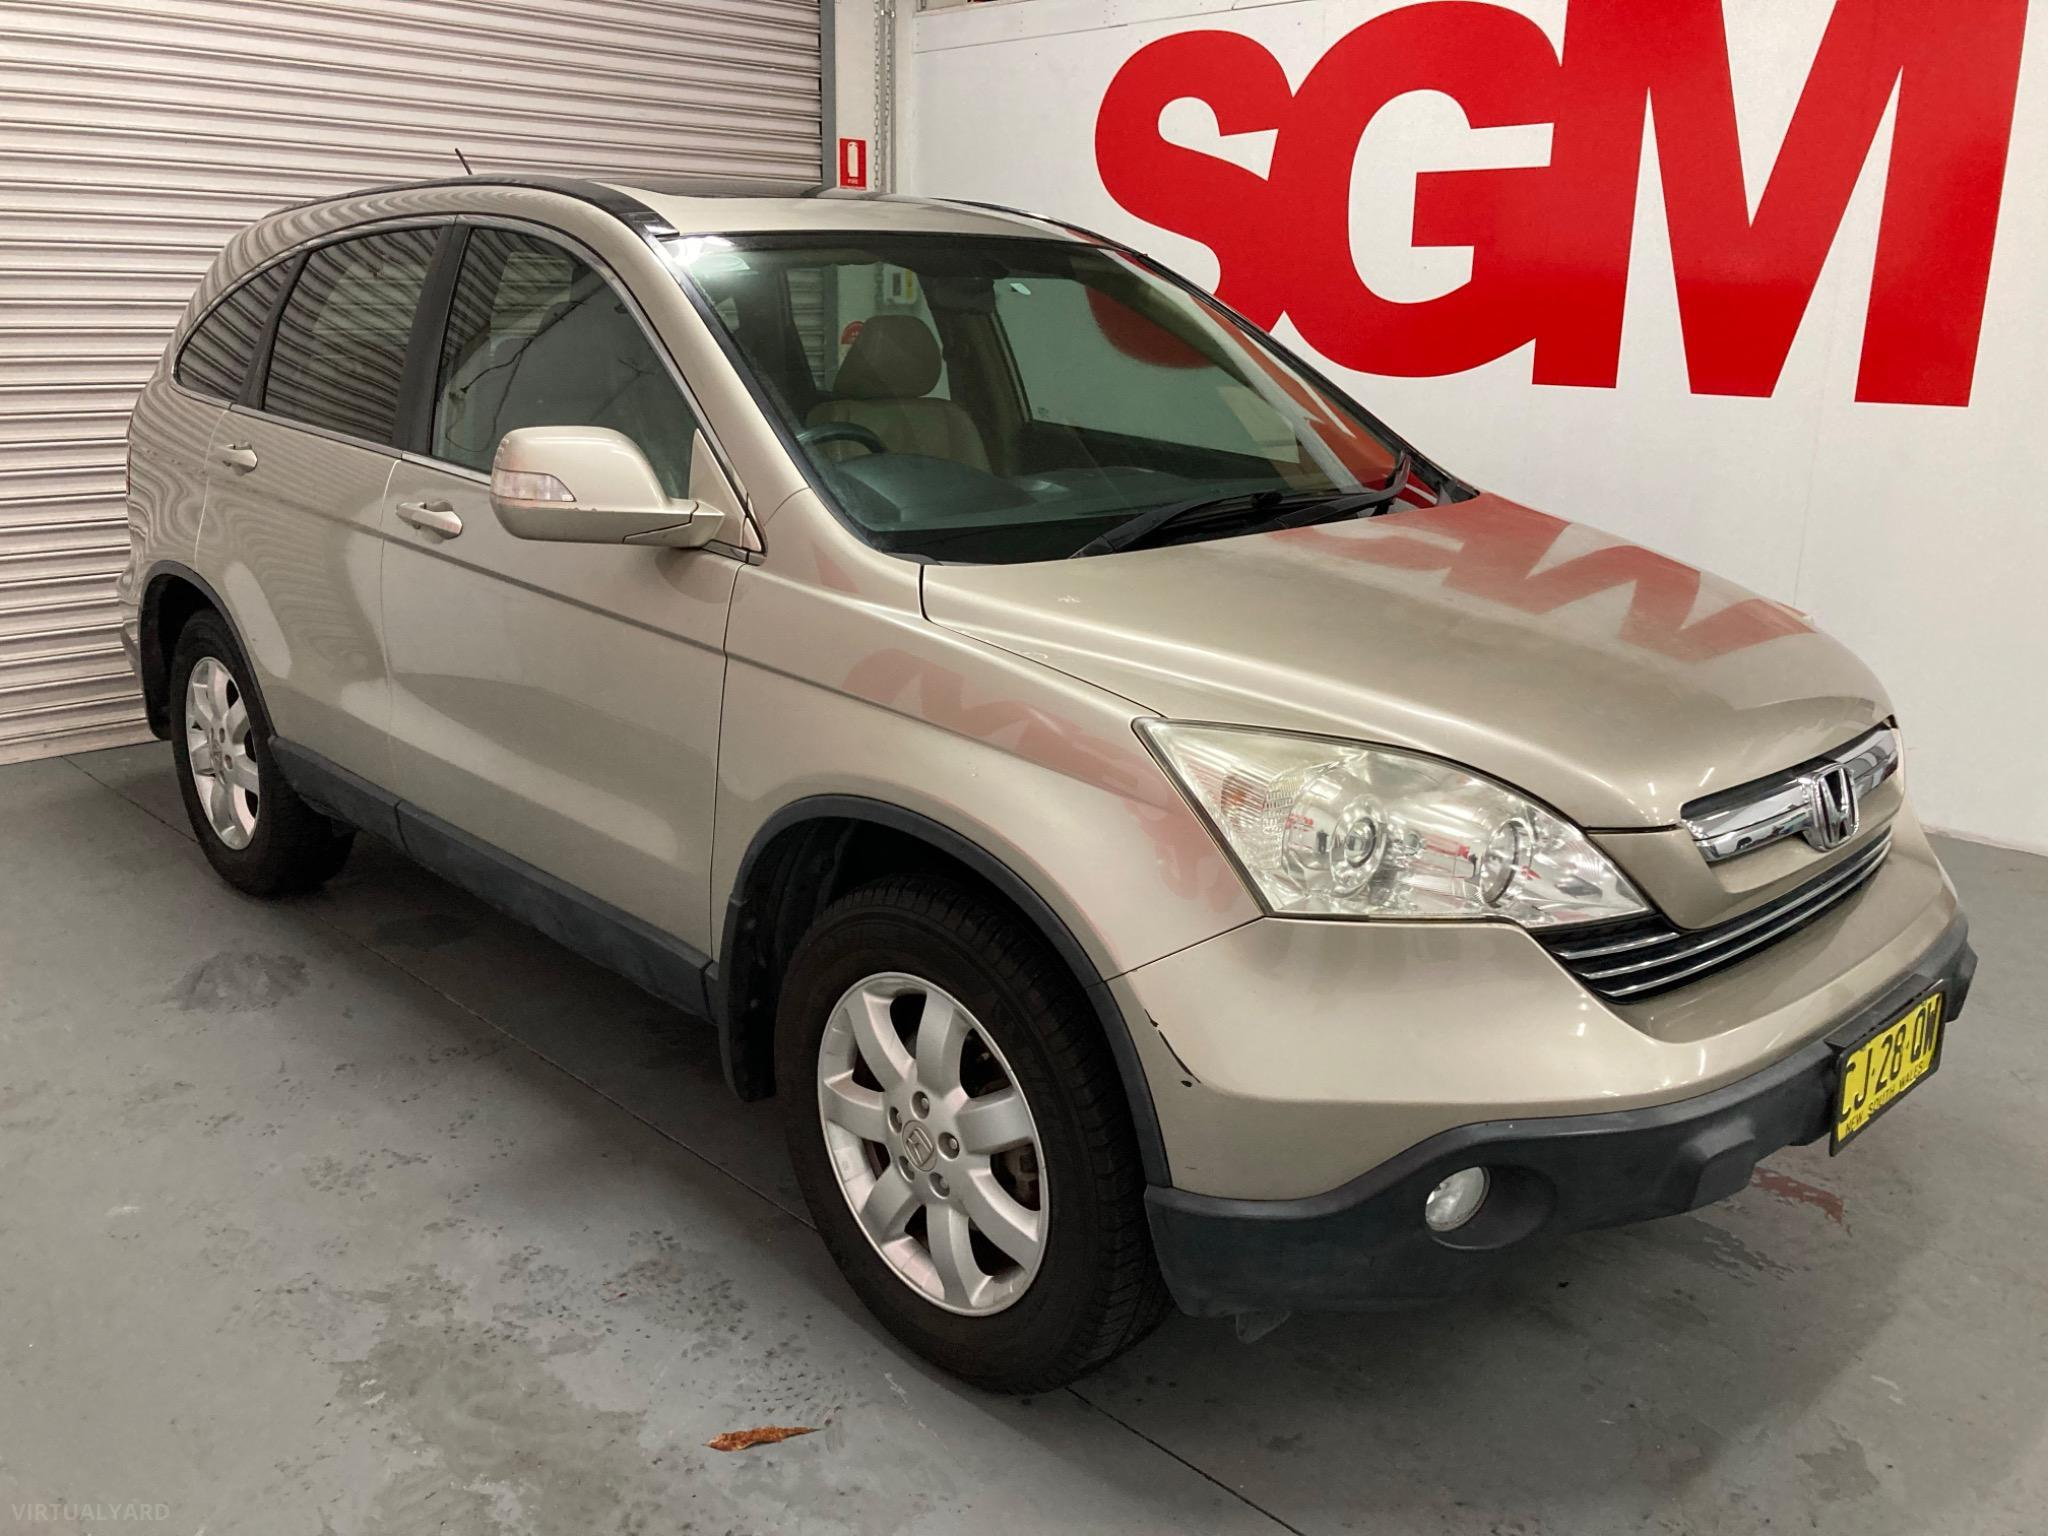 2007 Honda CR-V RE Luxury Wagon 4dr Man 6sp 4x4 2.4i Picture 8